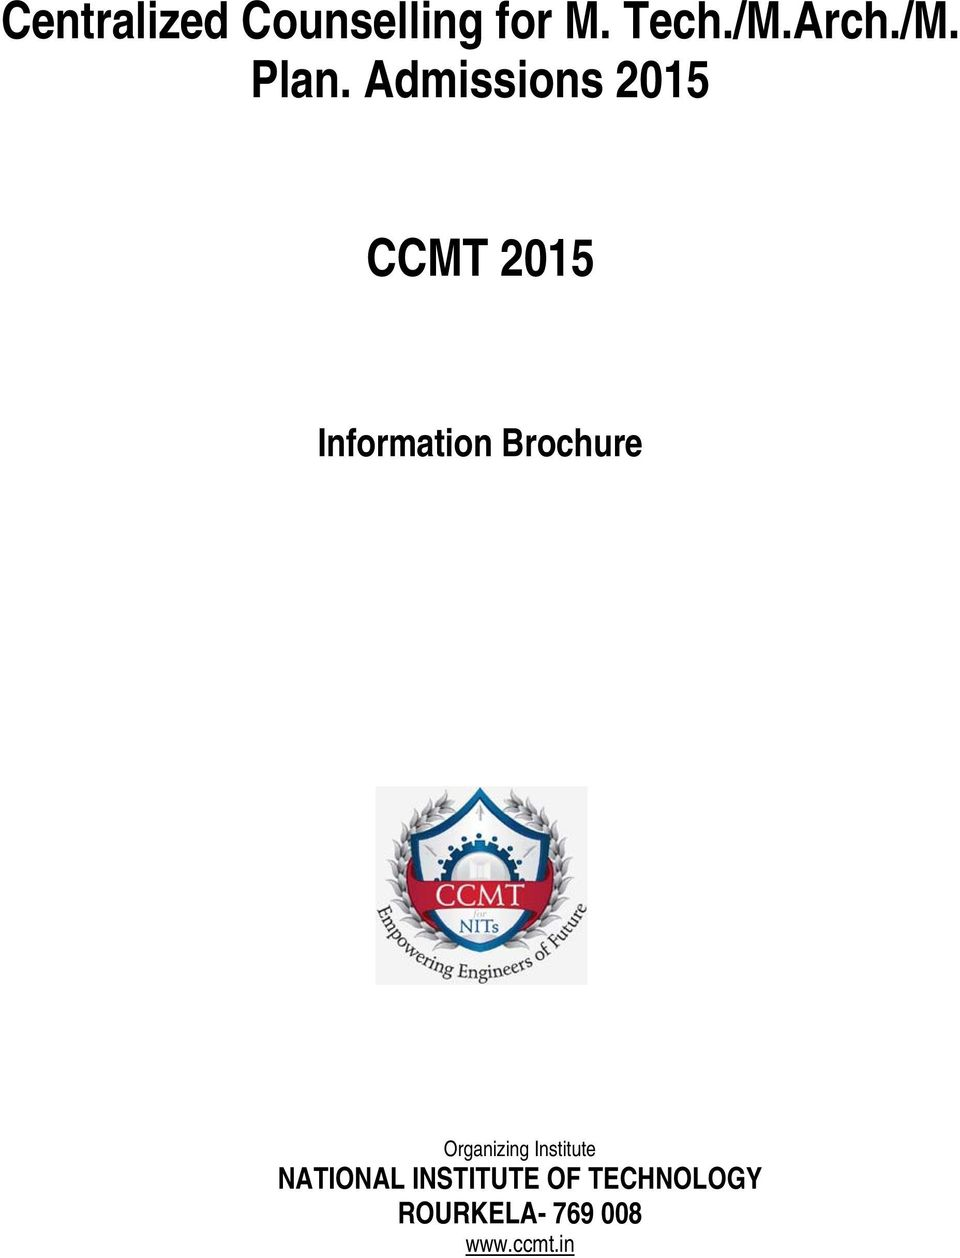 Admissions 2015 CCMT 2015 Information